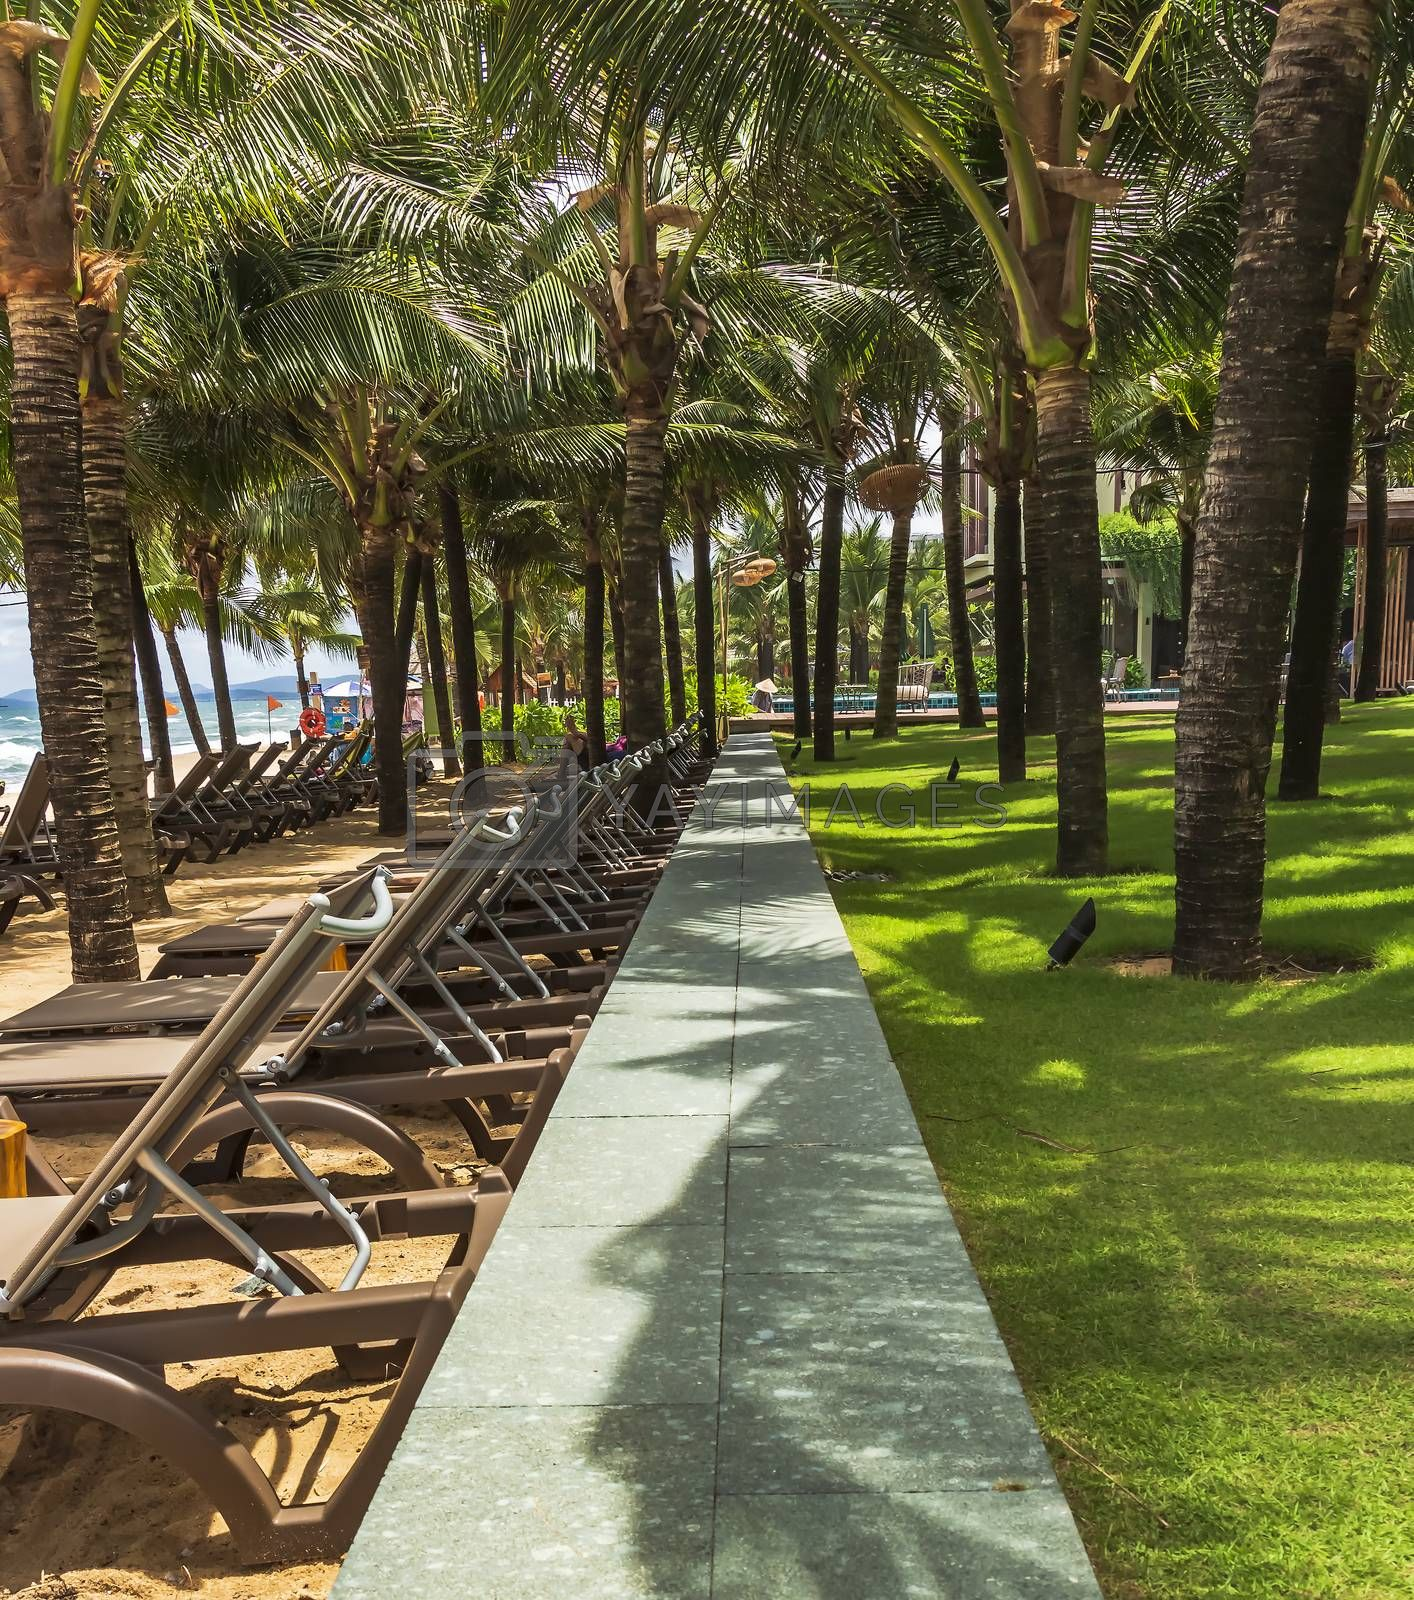 Row of beach deckchairs under coconut palm trees on a hot sunny day